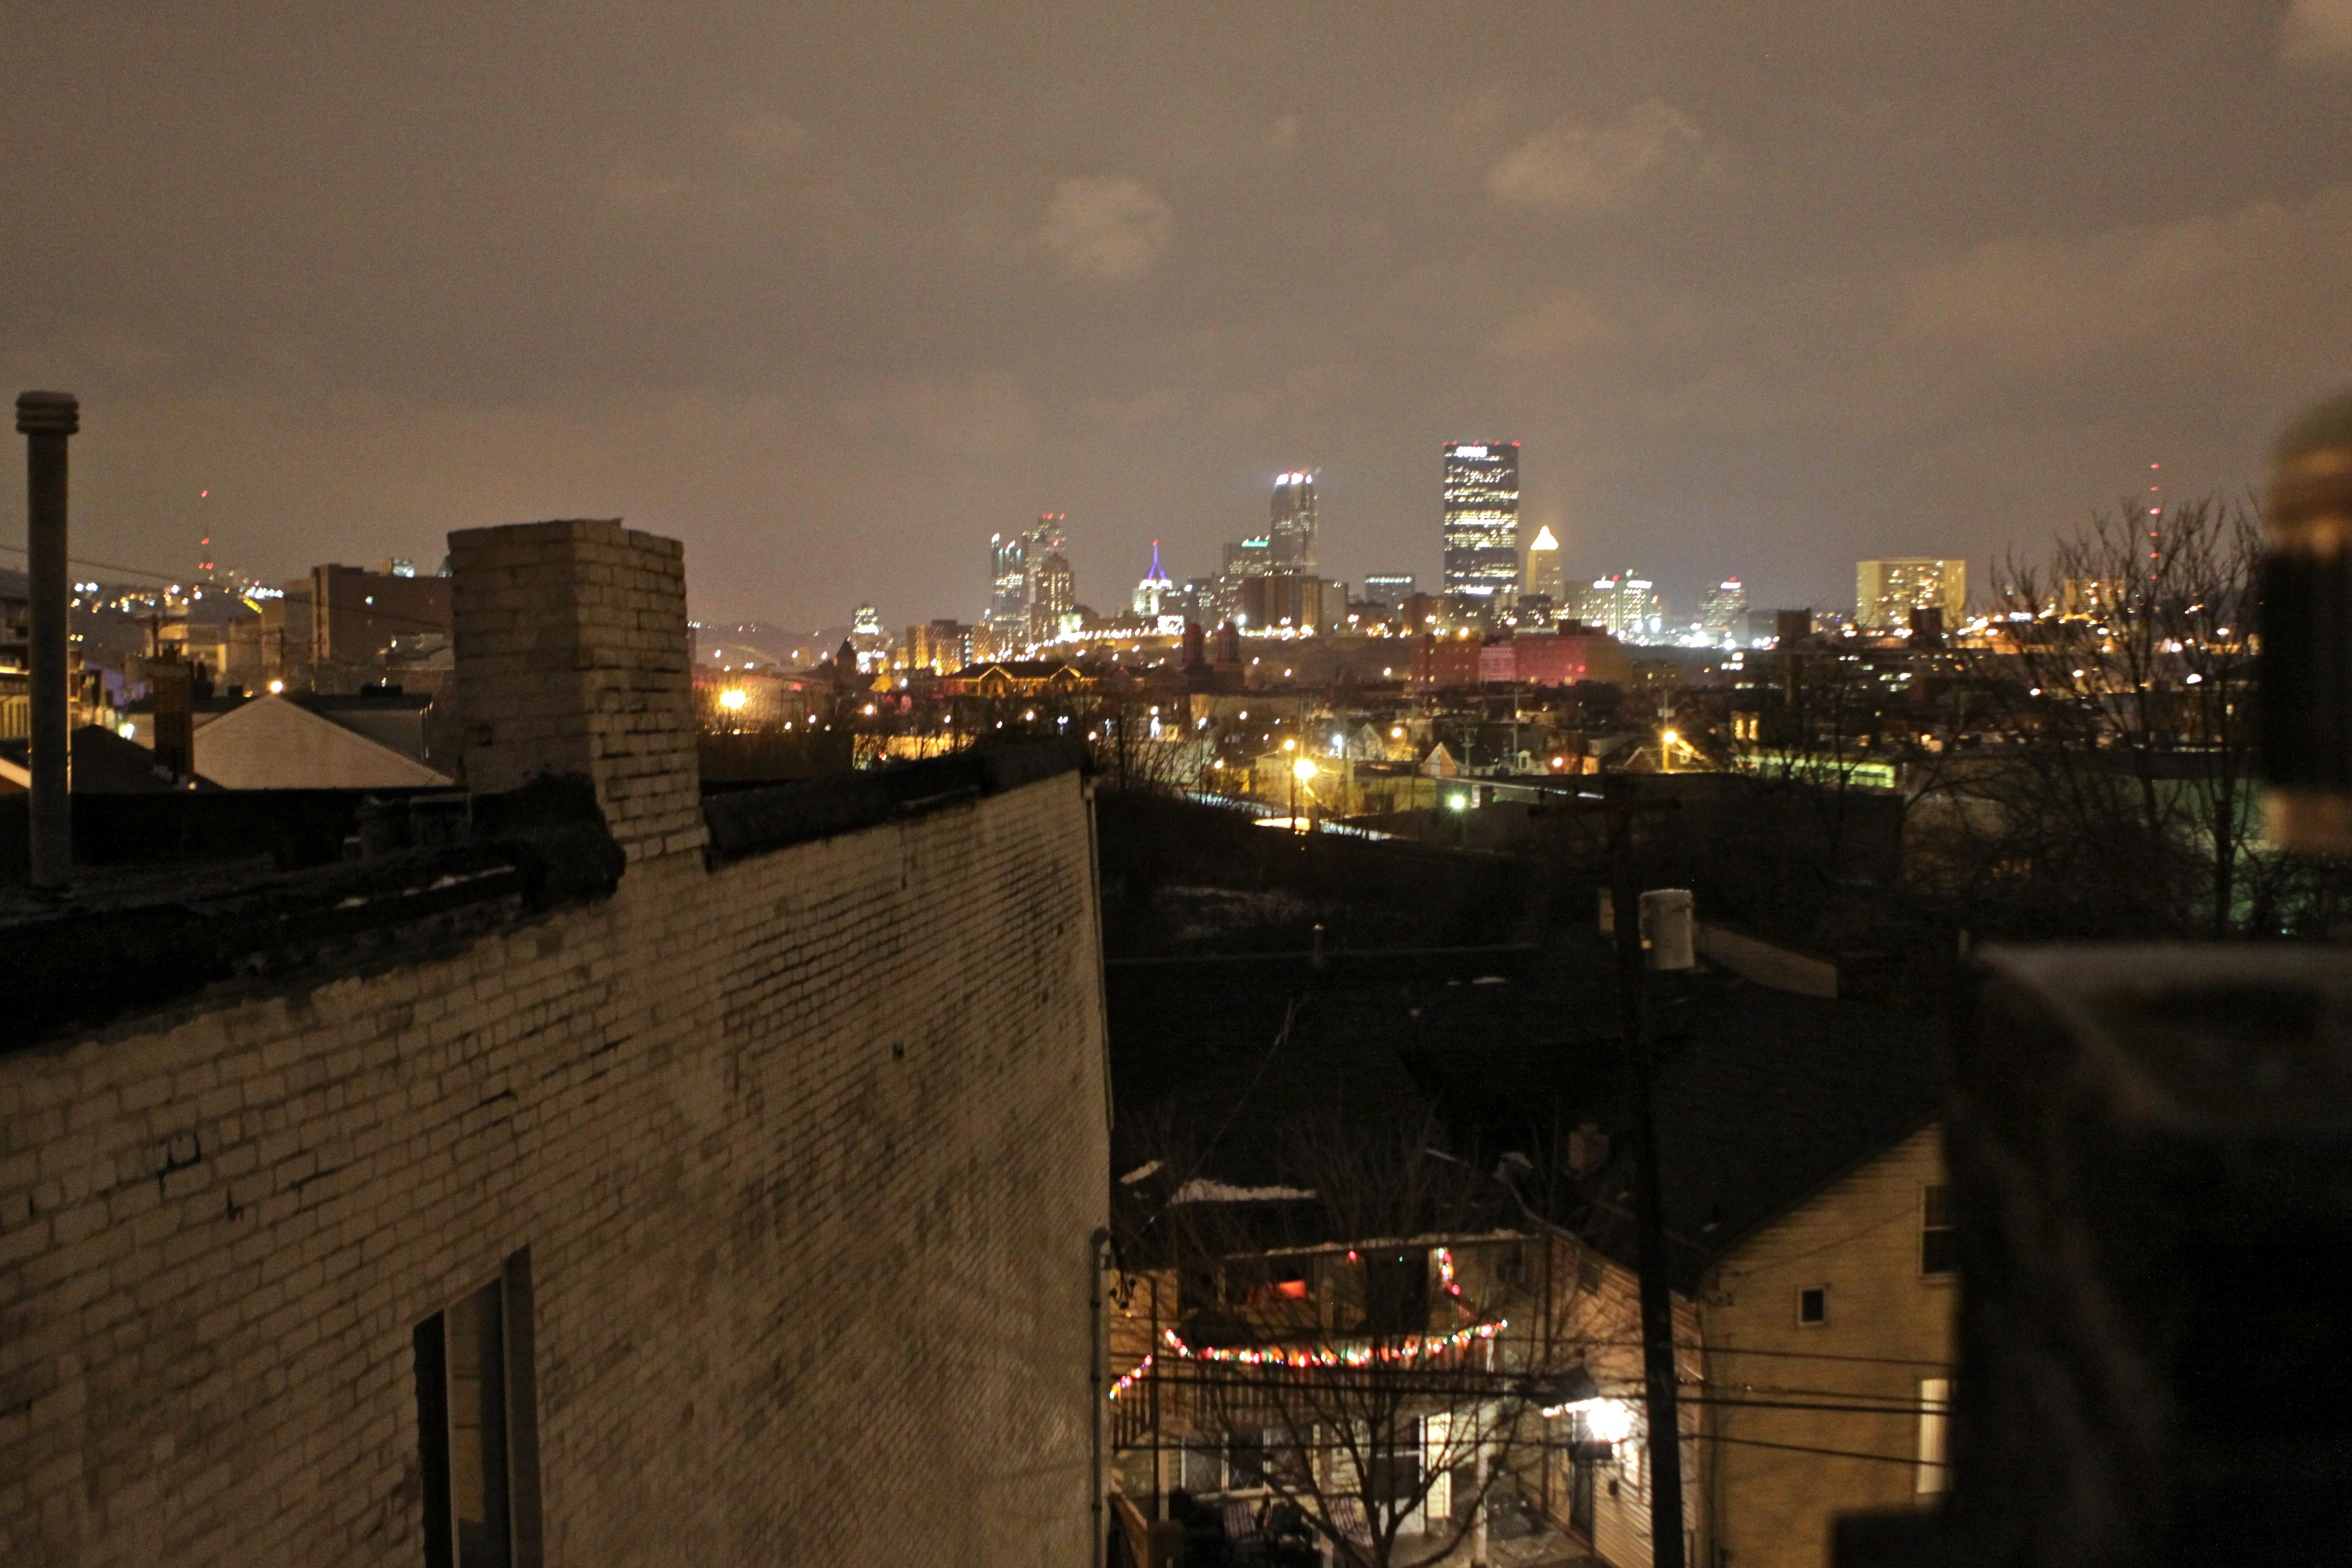 Rooftop Deck View Of City From The Southside Ruth E